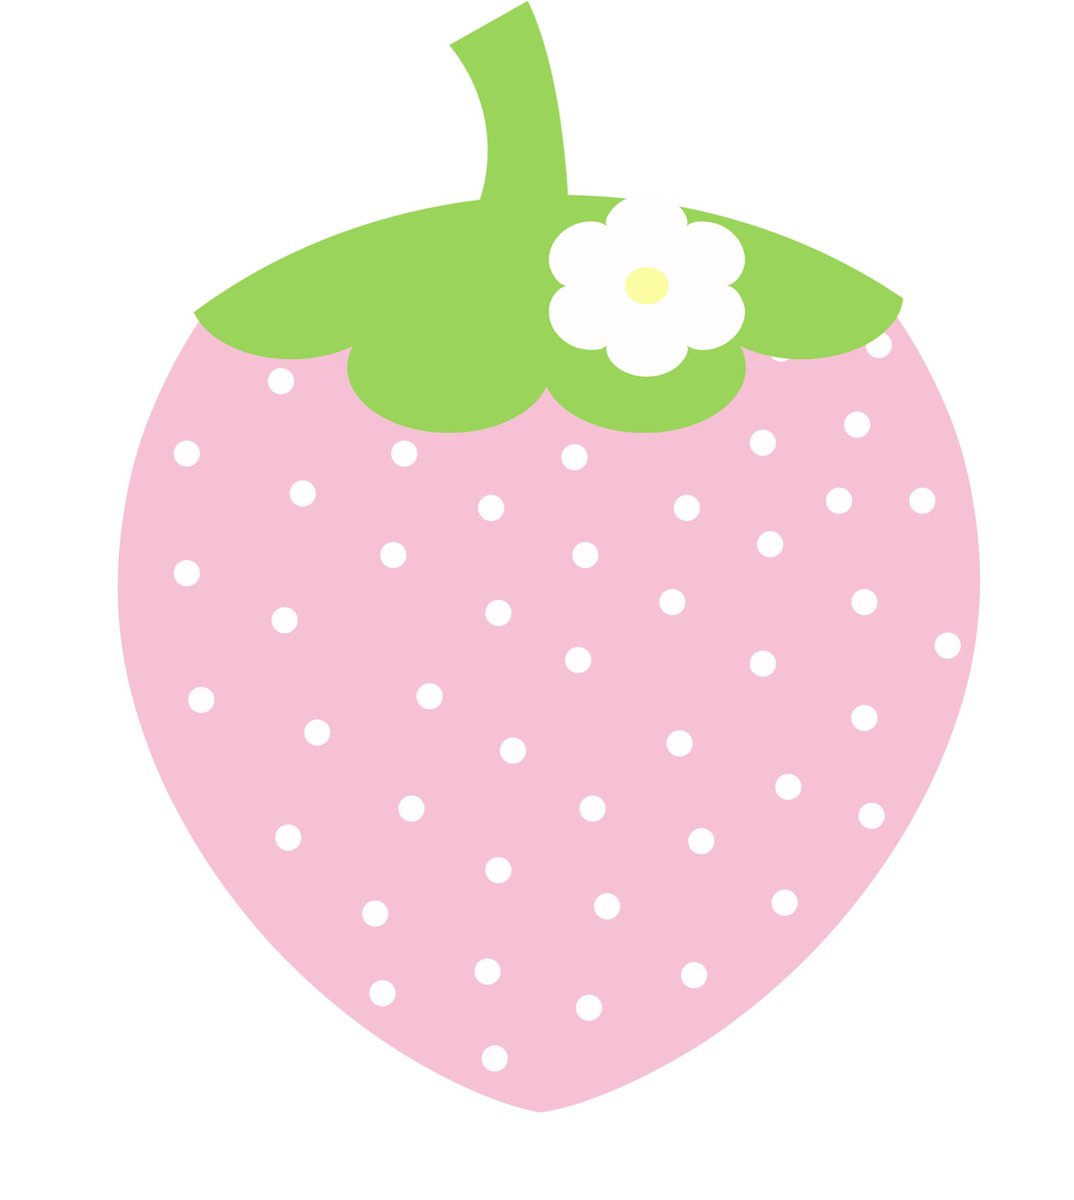 Strawberry clipart pink strawberry. Quiltcake